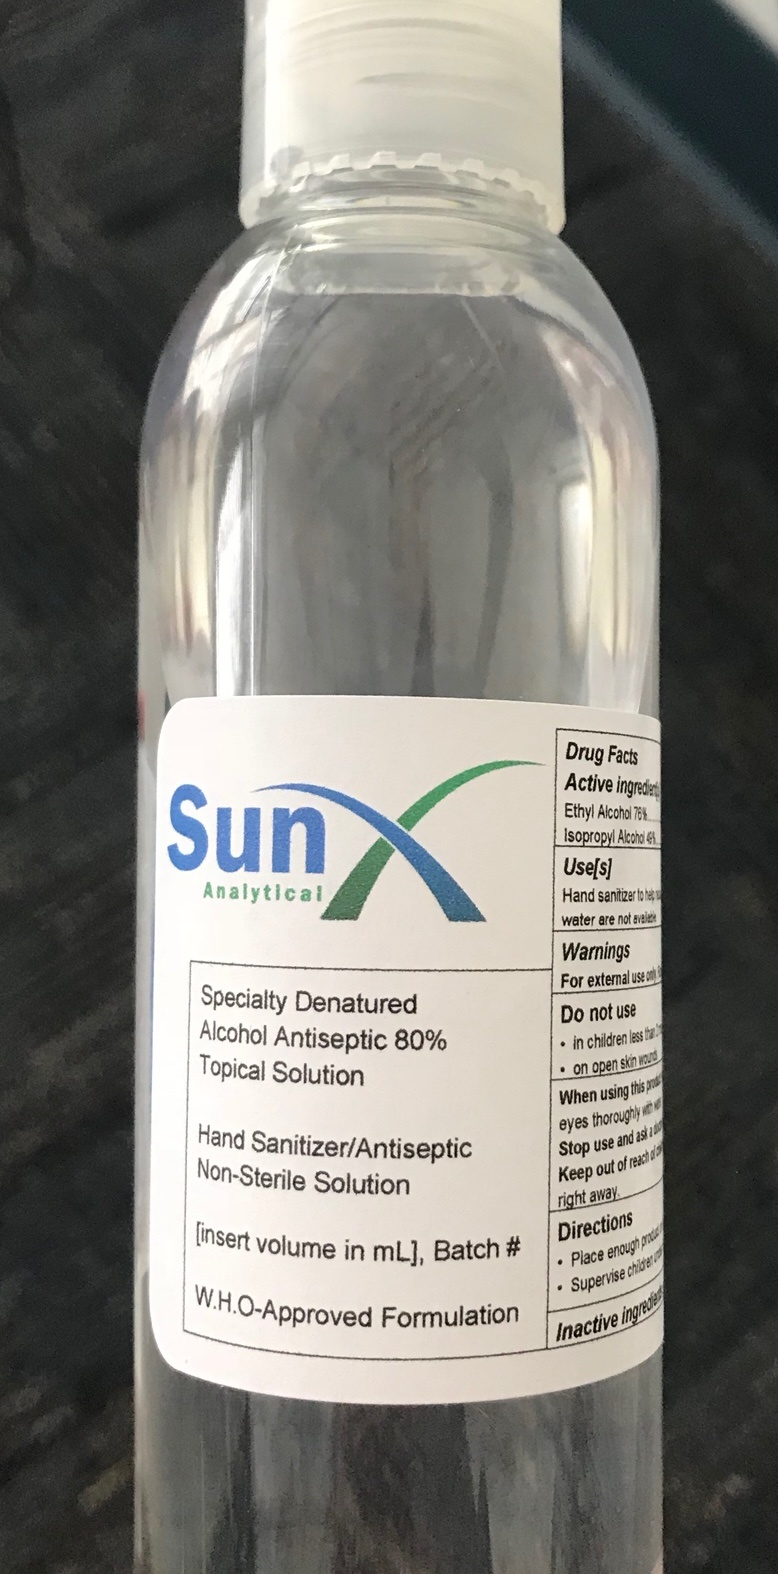 SunX Analytical Hand Sanitizer